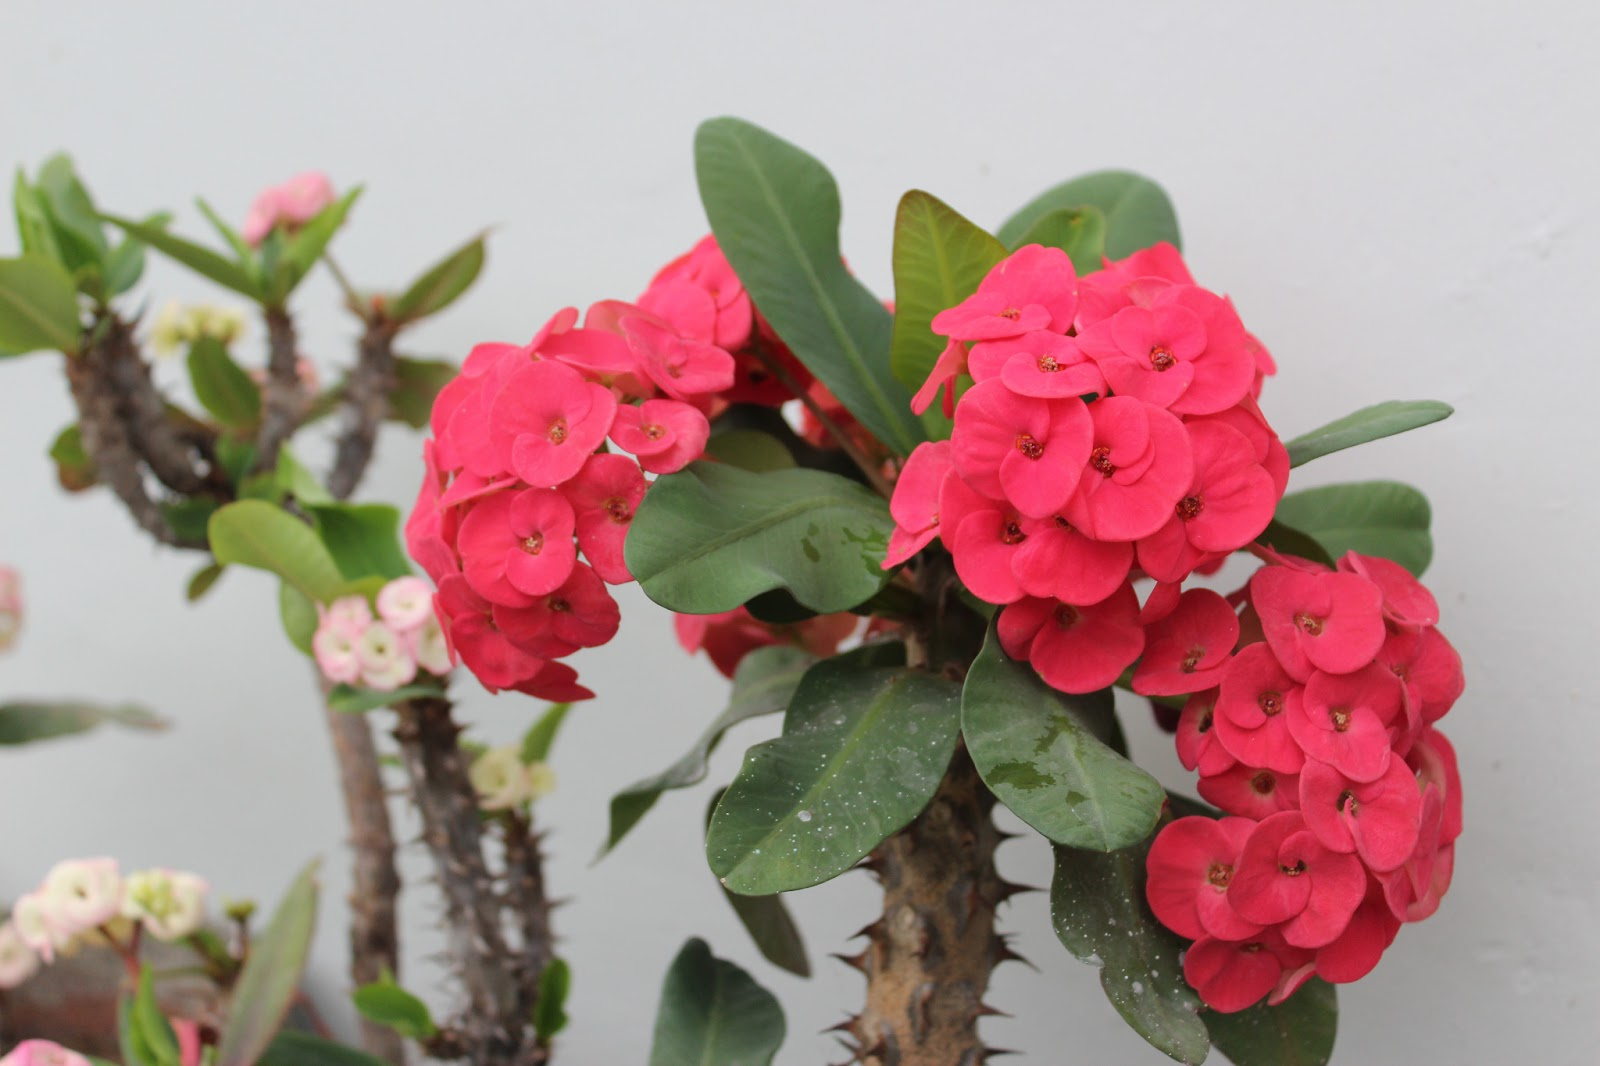 Gardening for starters flowering plants this plant is very easy to maintain as it needs very little water and a lot of sun which is not a problem in the philippines the blooms last very long and izmirmasajfo